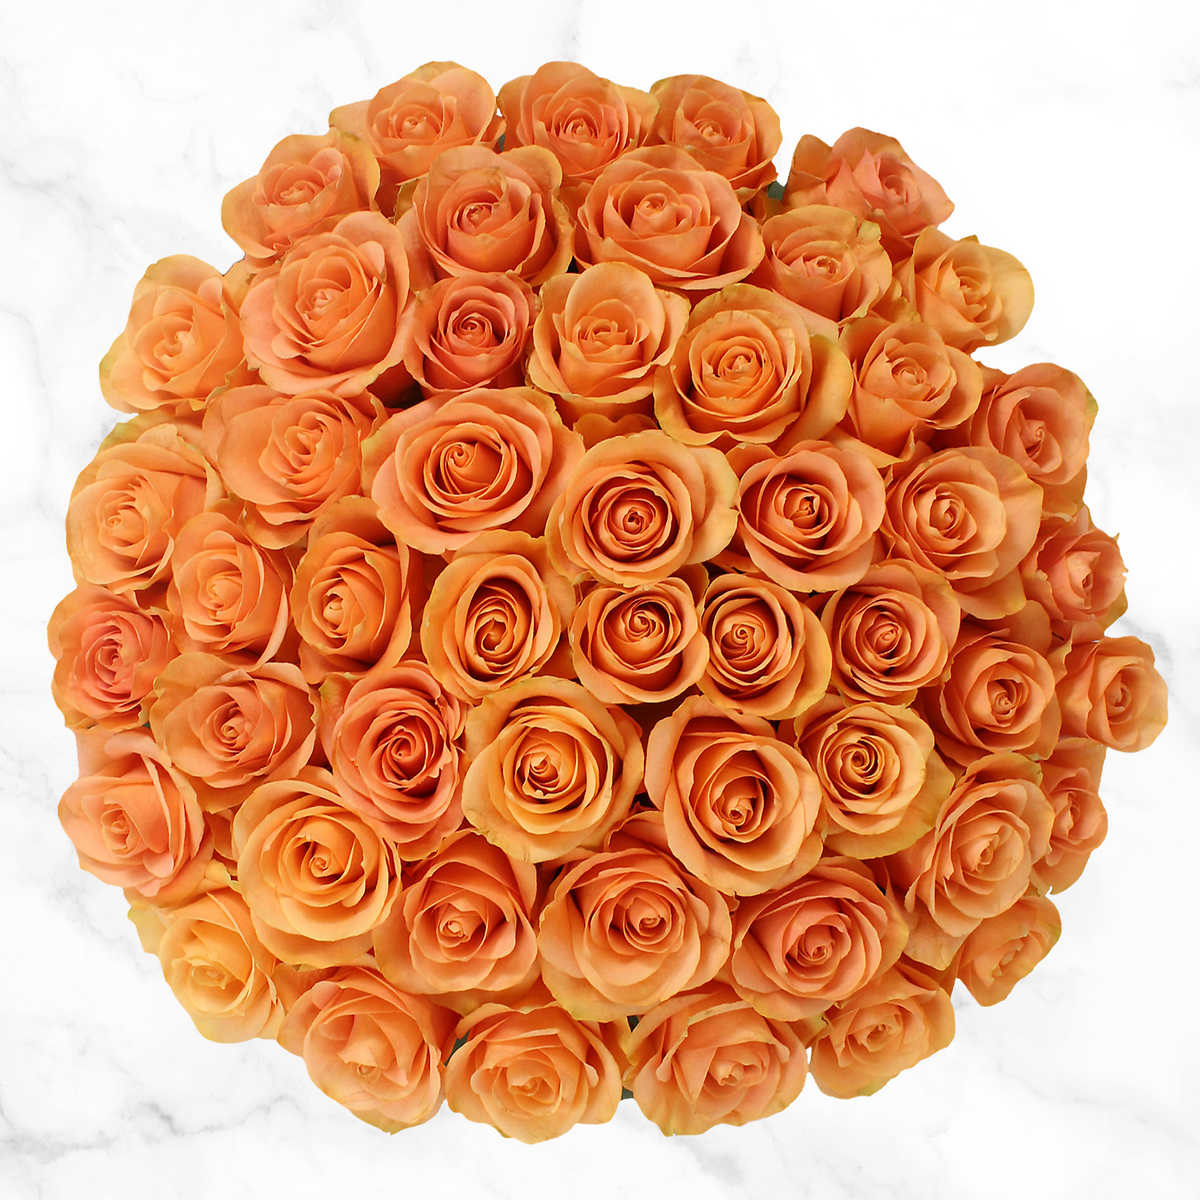 Home bulk roses peach roses - 50 Stem Peach Roses Item 1183432 Click To Zoom